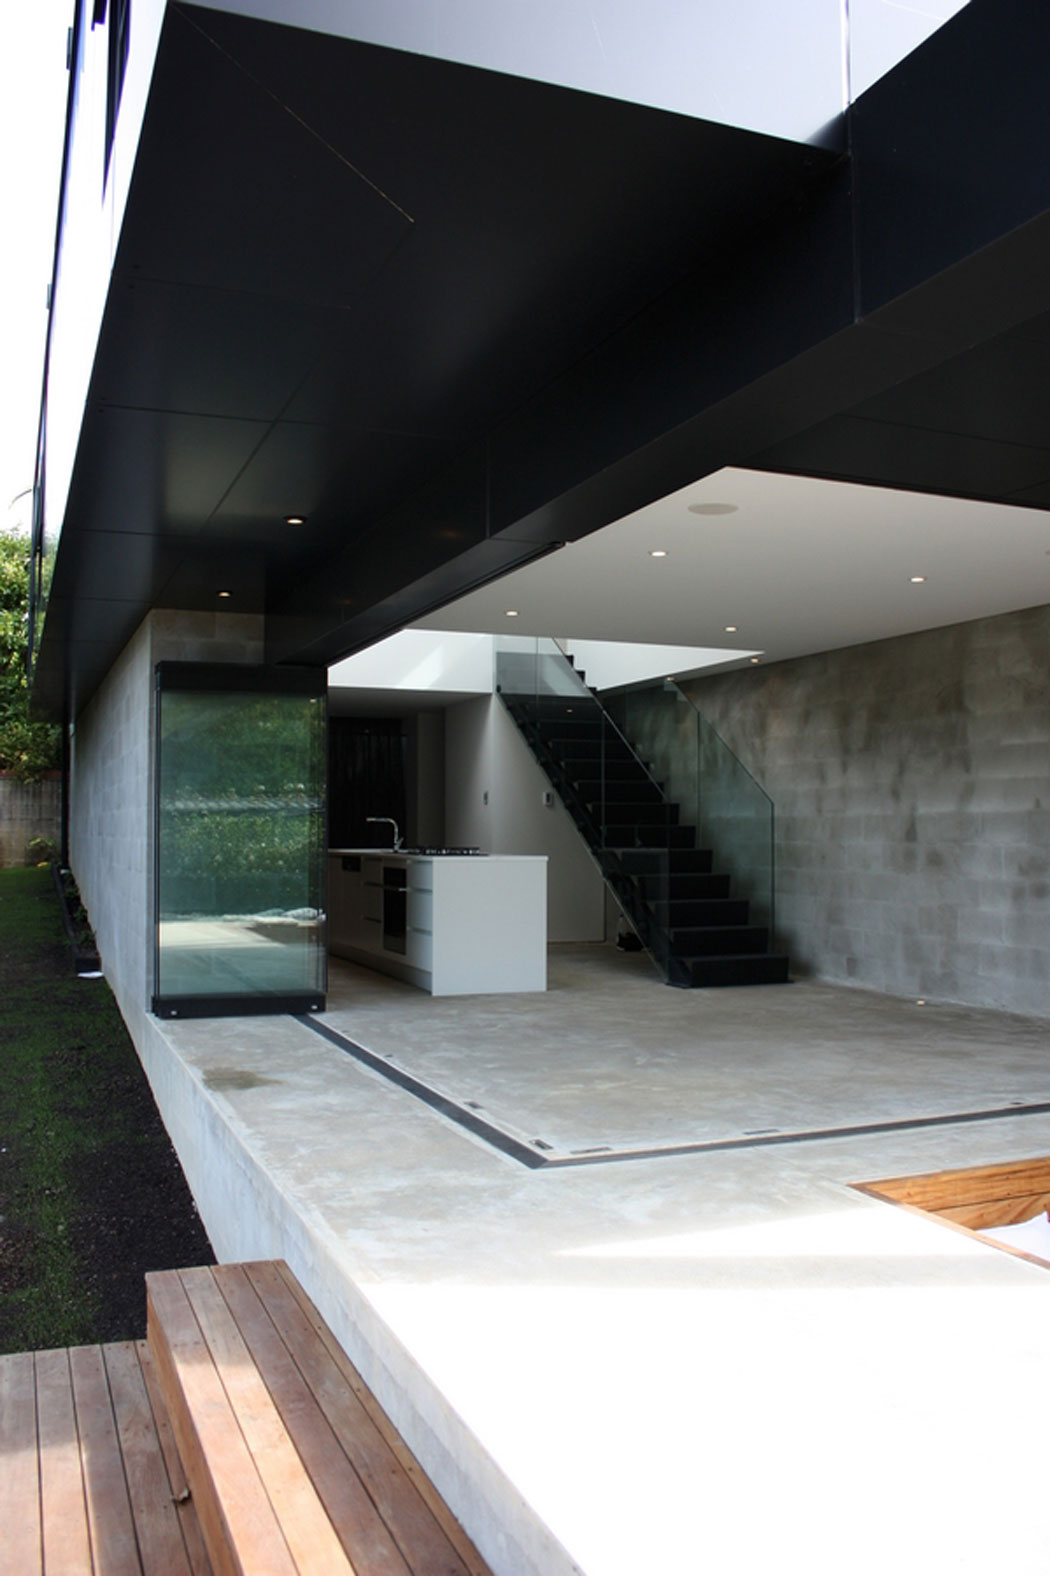 HERO-Black-roof-modern-open-home-architecture-ITCHBAN.com